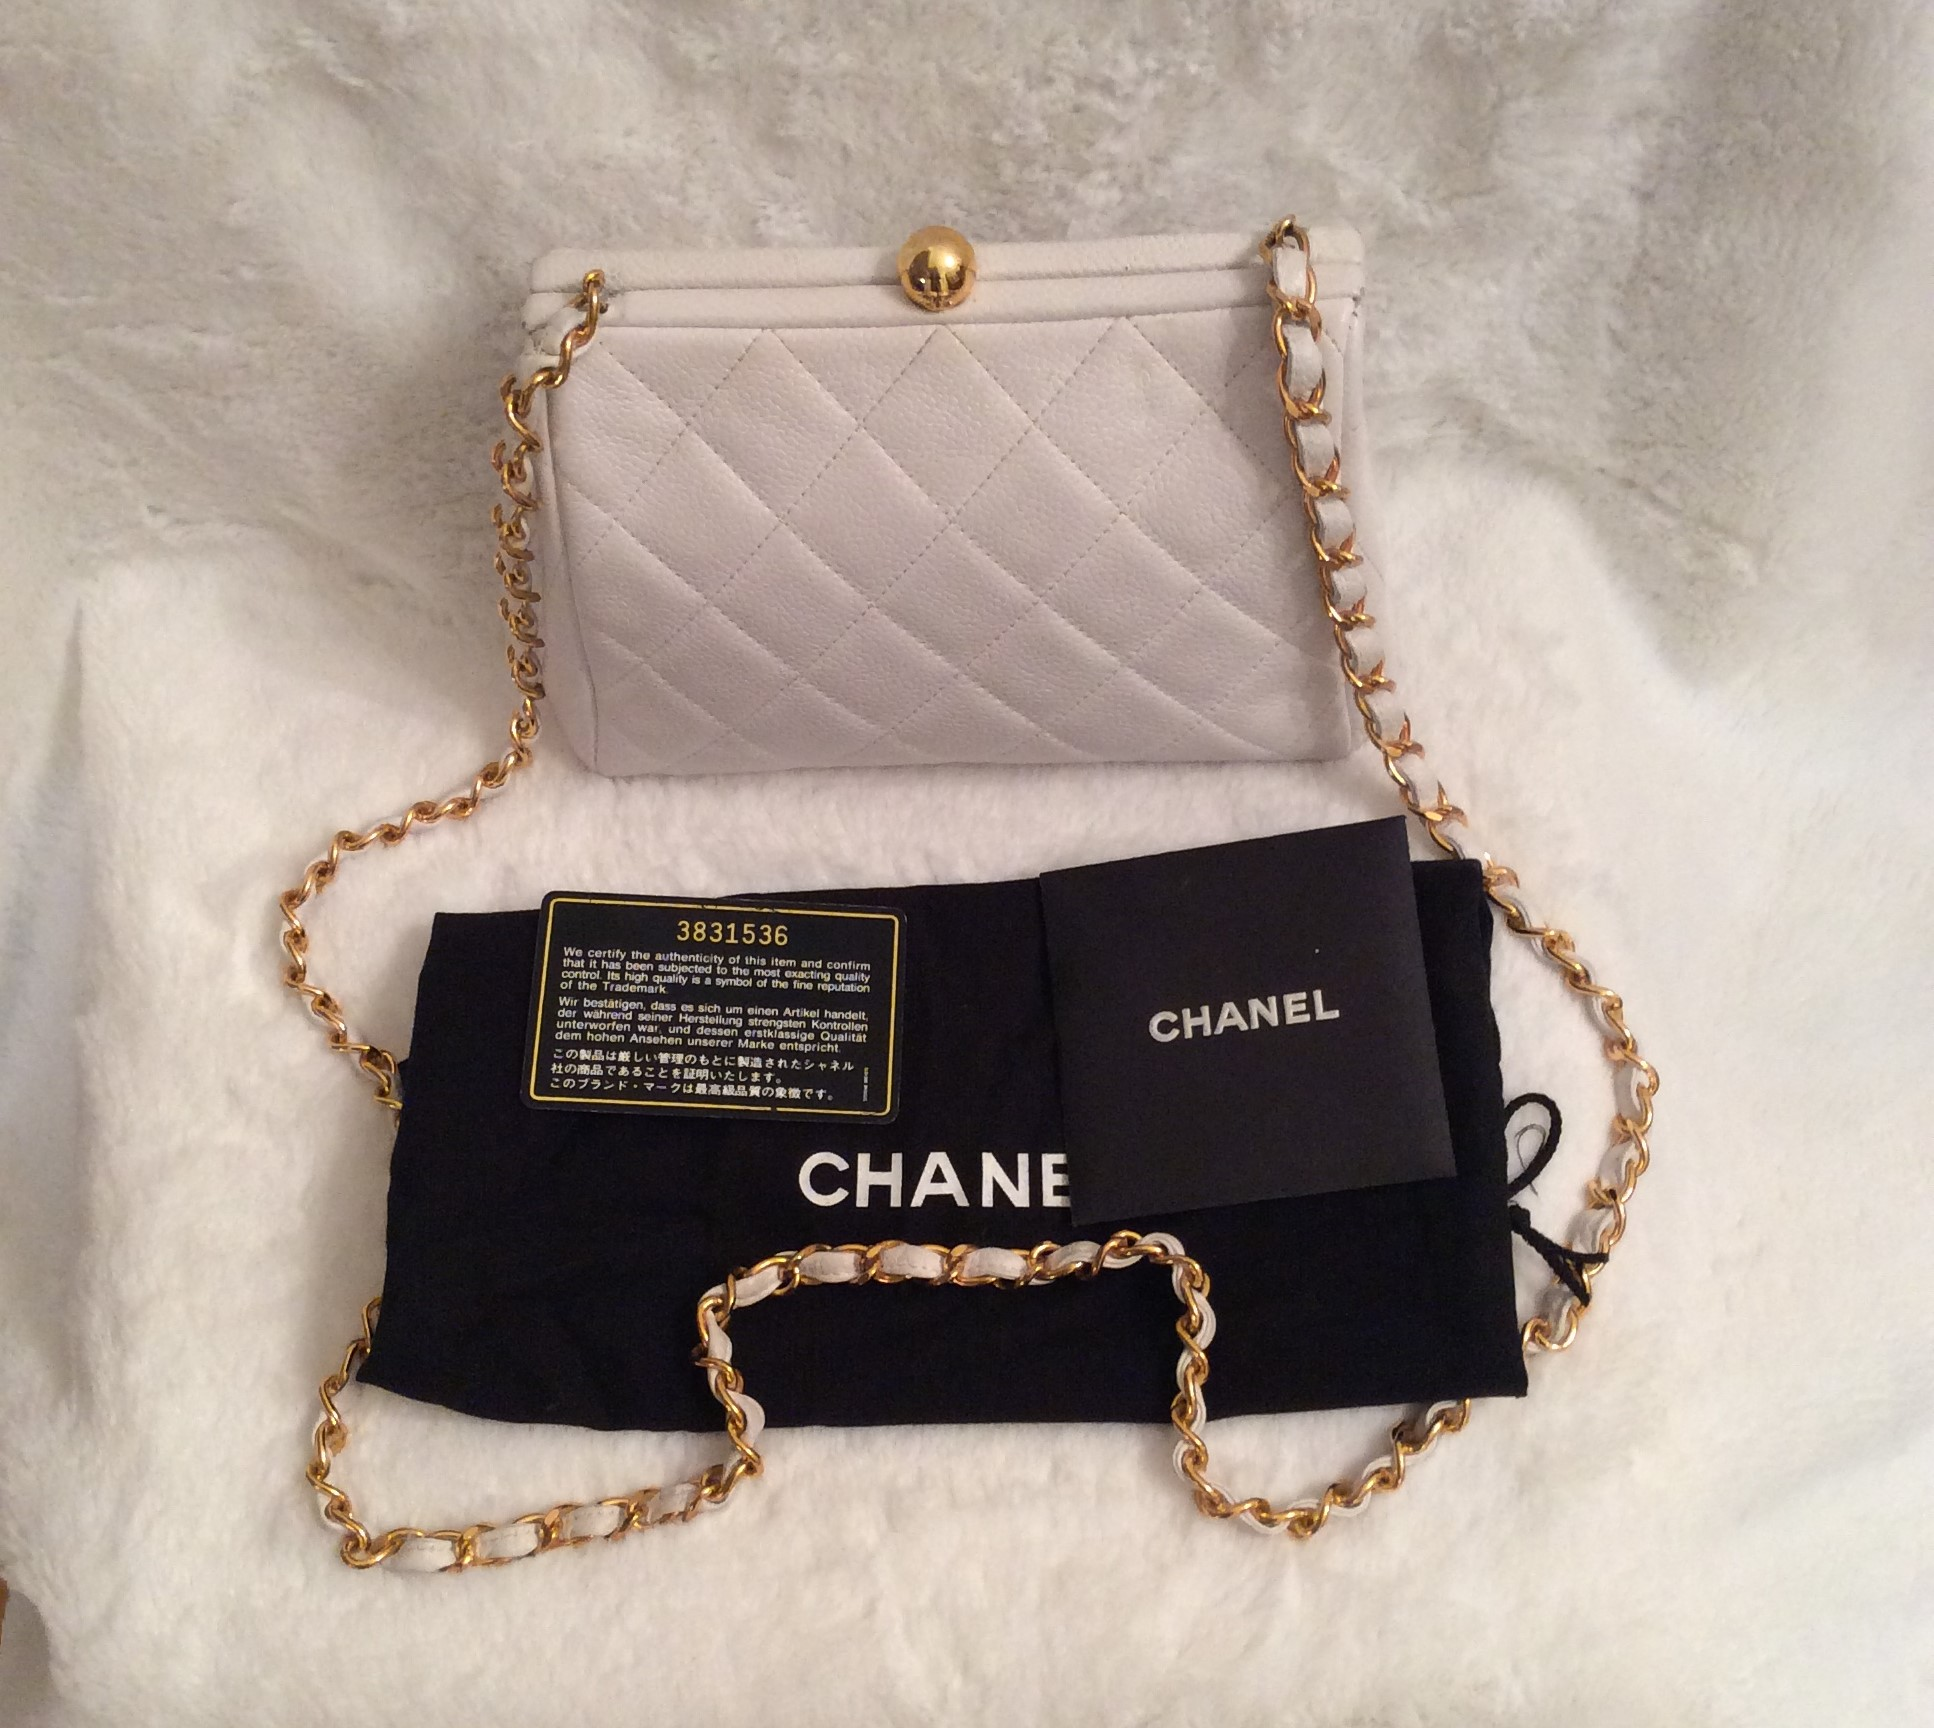 2485f7277e3b Chanel  Authentic Vintage Small White Quilted Caviar Leather Large CC Logo  on Bottom Handbag with Long Chain Link Leather Shoulder Strap and Gold Logo  ...